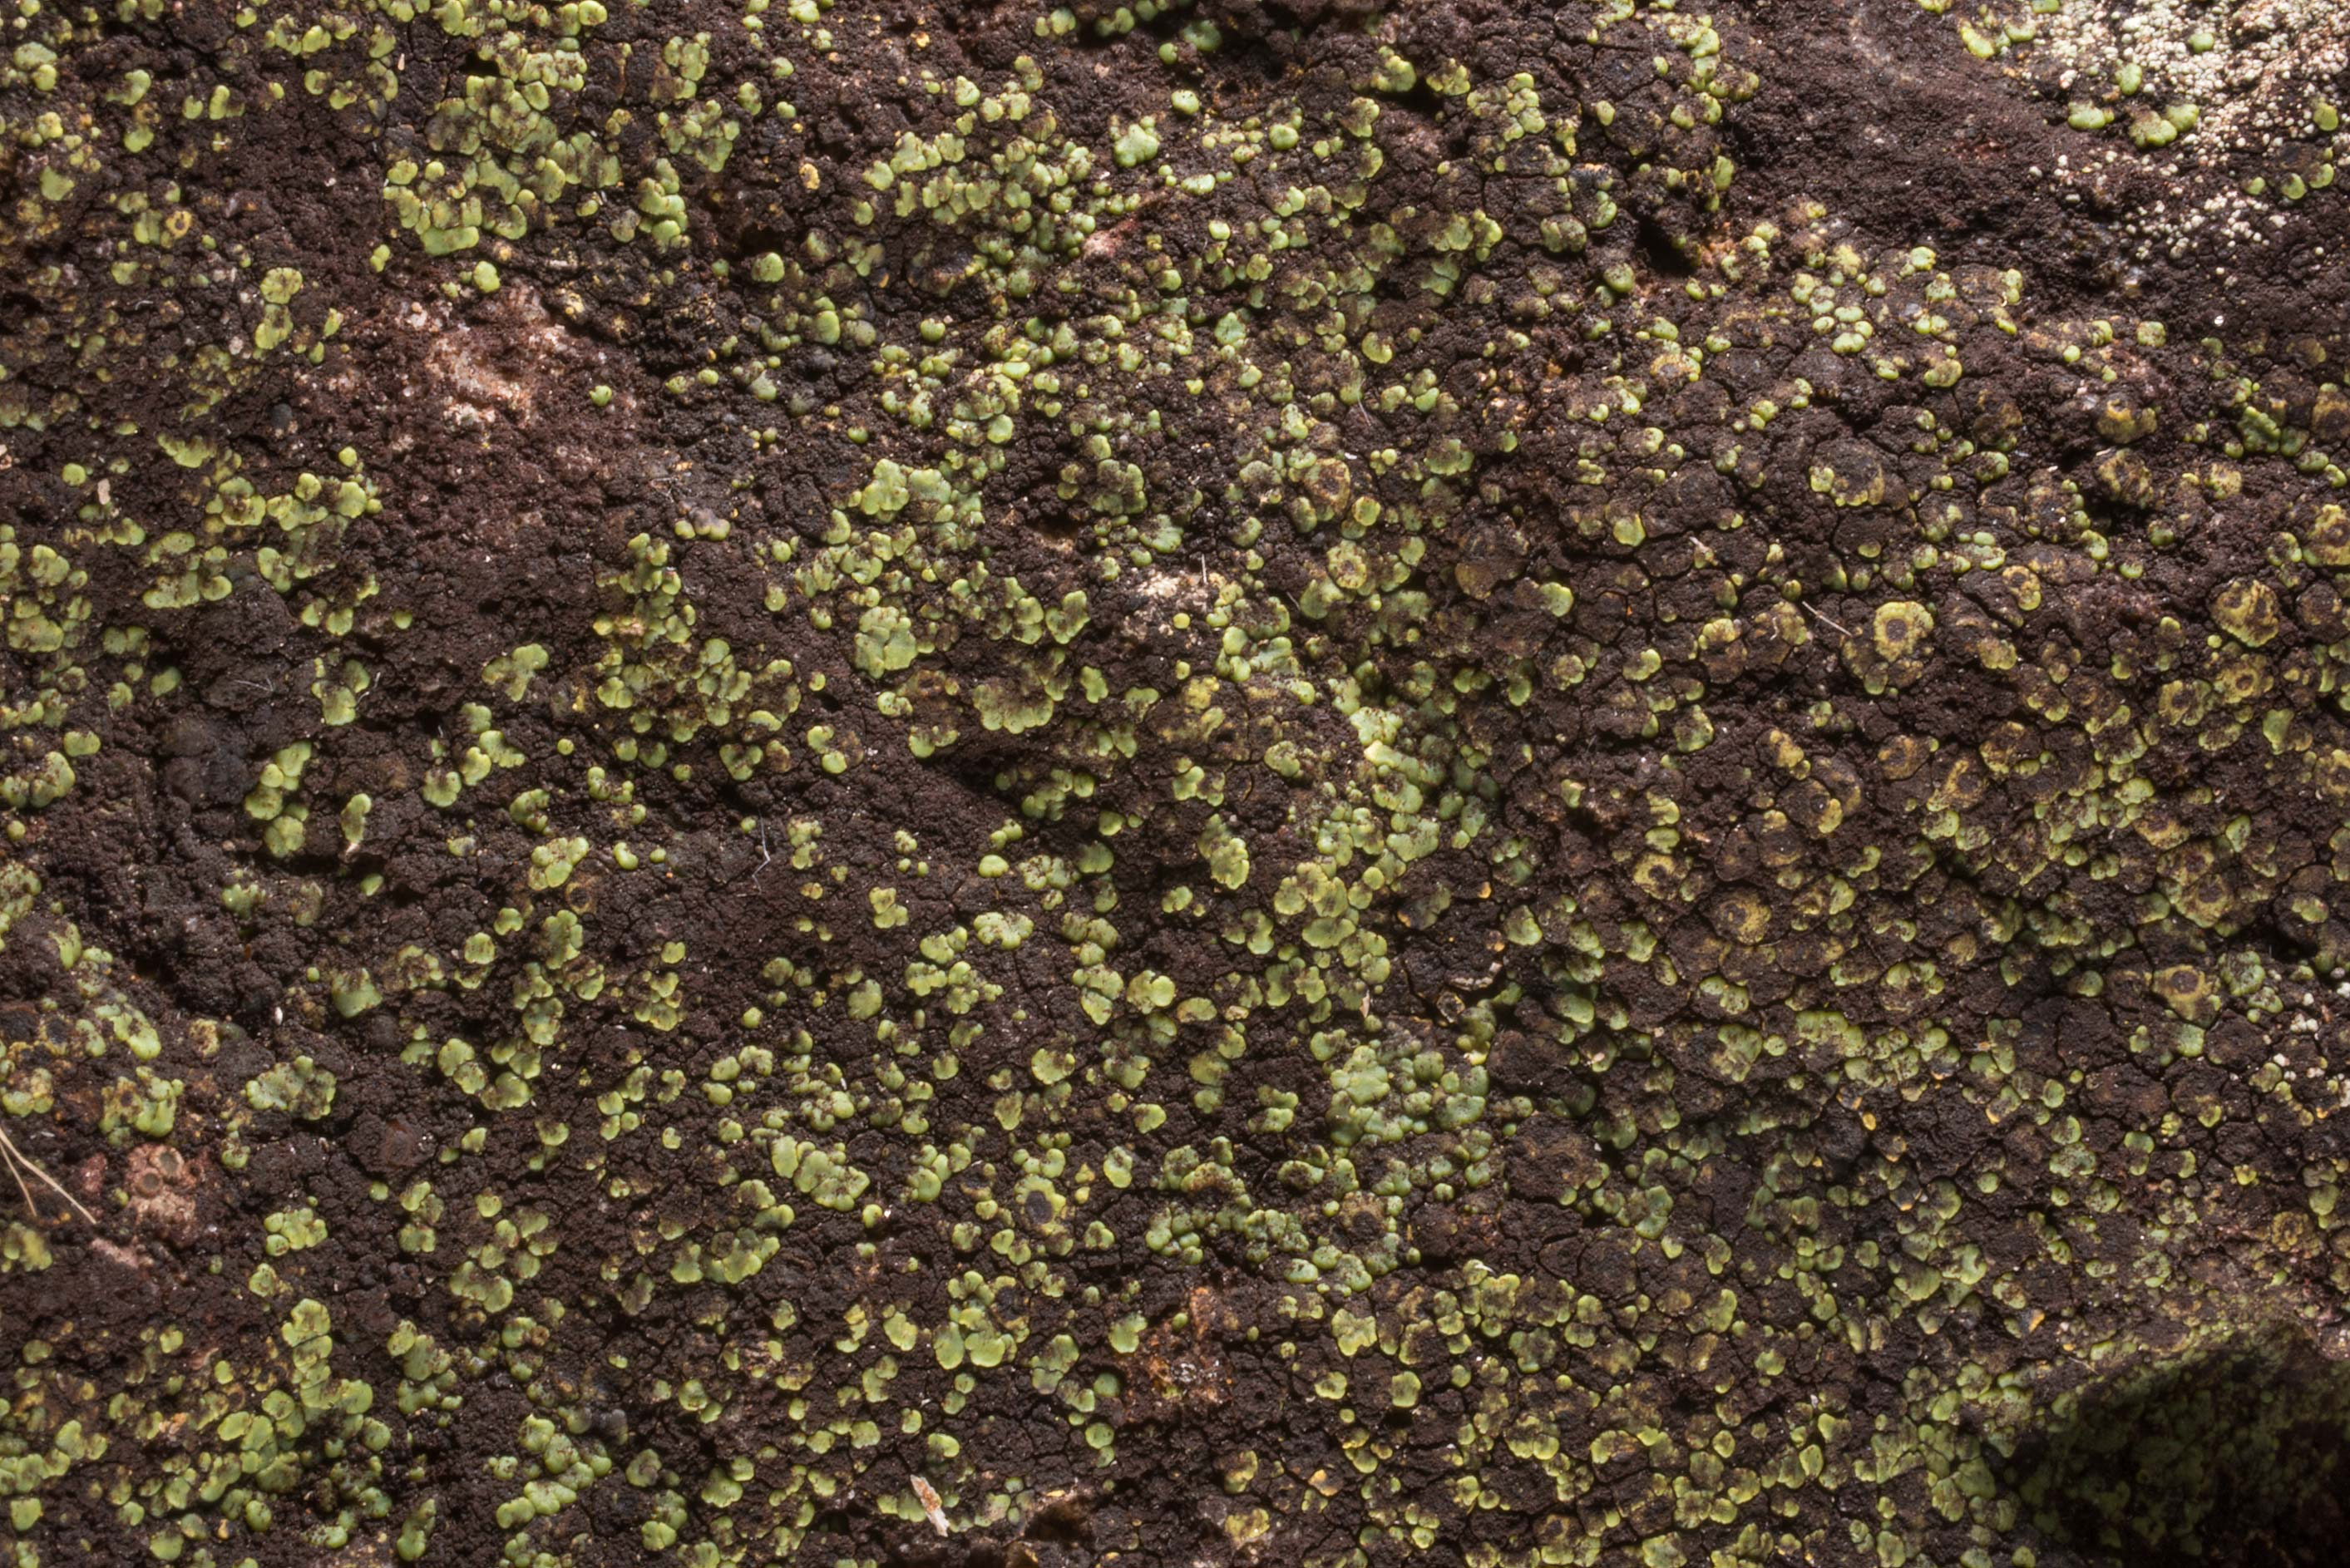 Rock-olive lichen (Peltula) in a forest in area...of Somerville Lake State Park. Texas